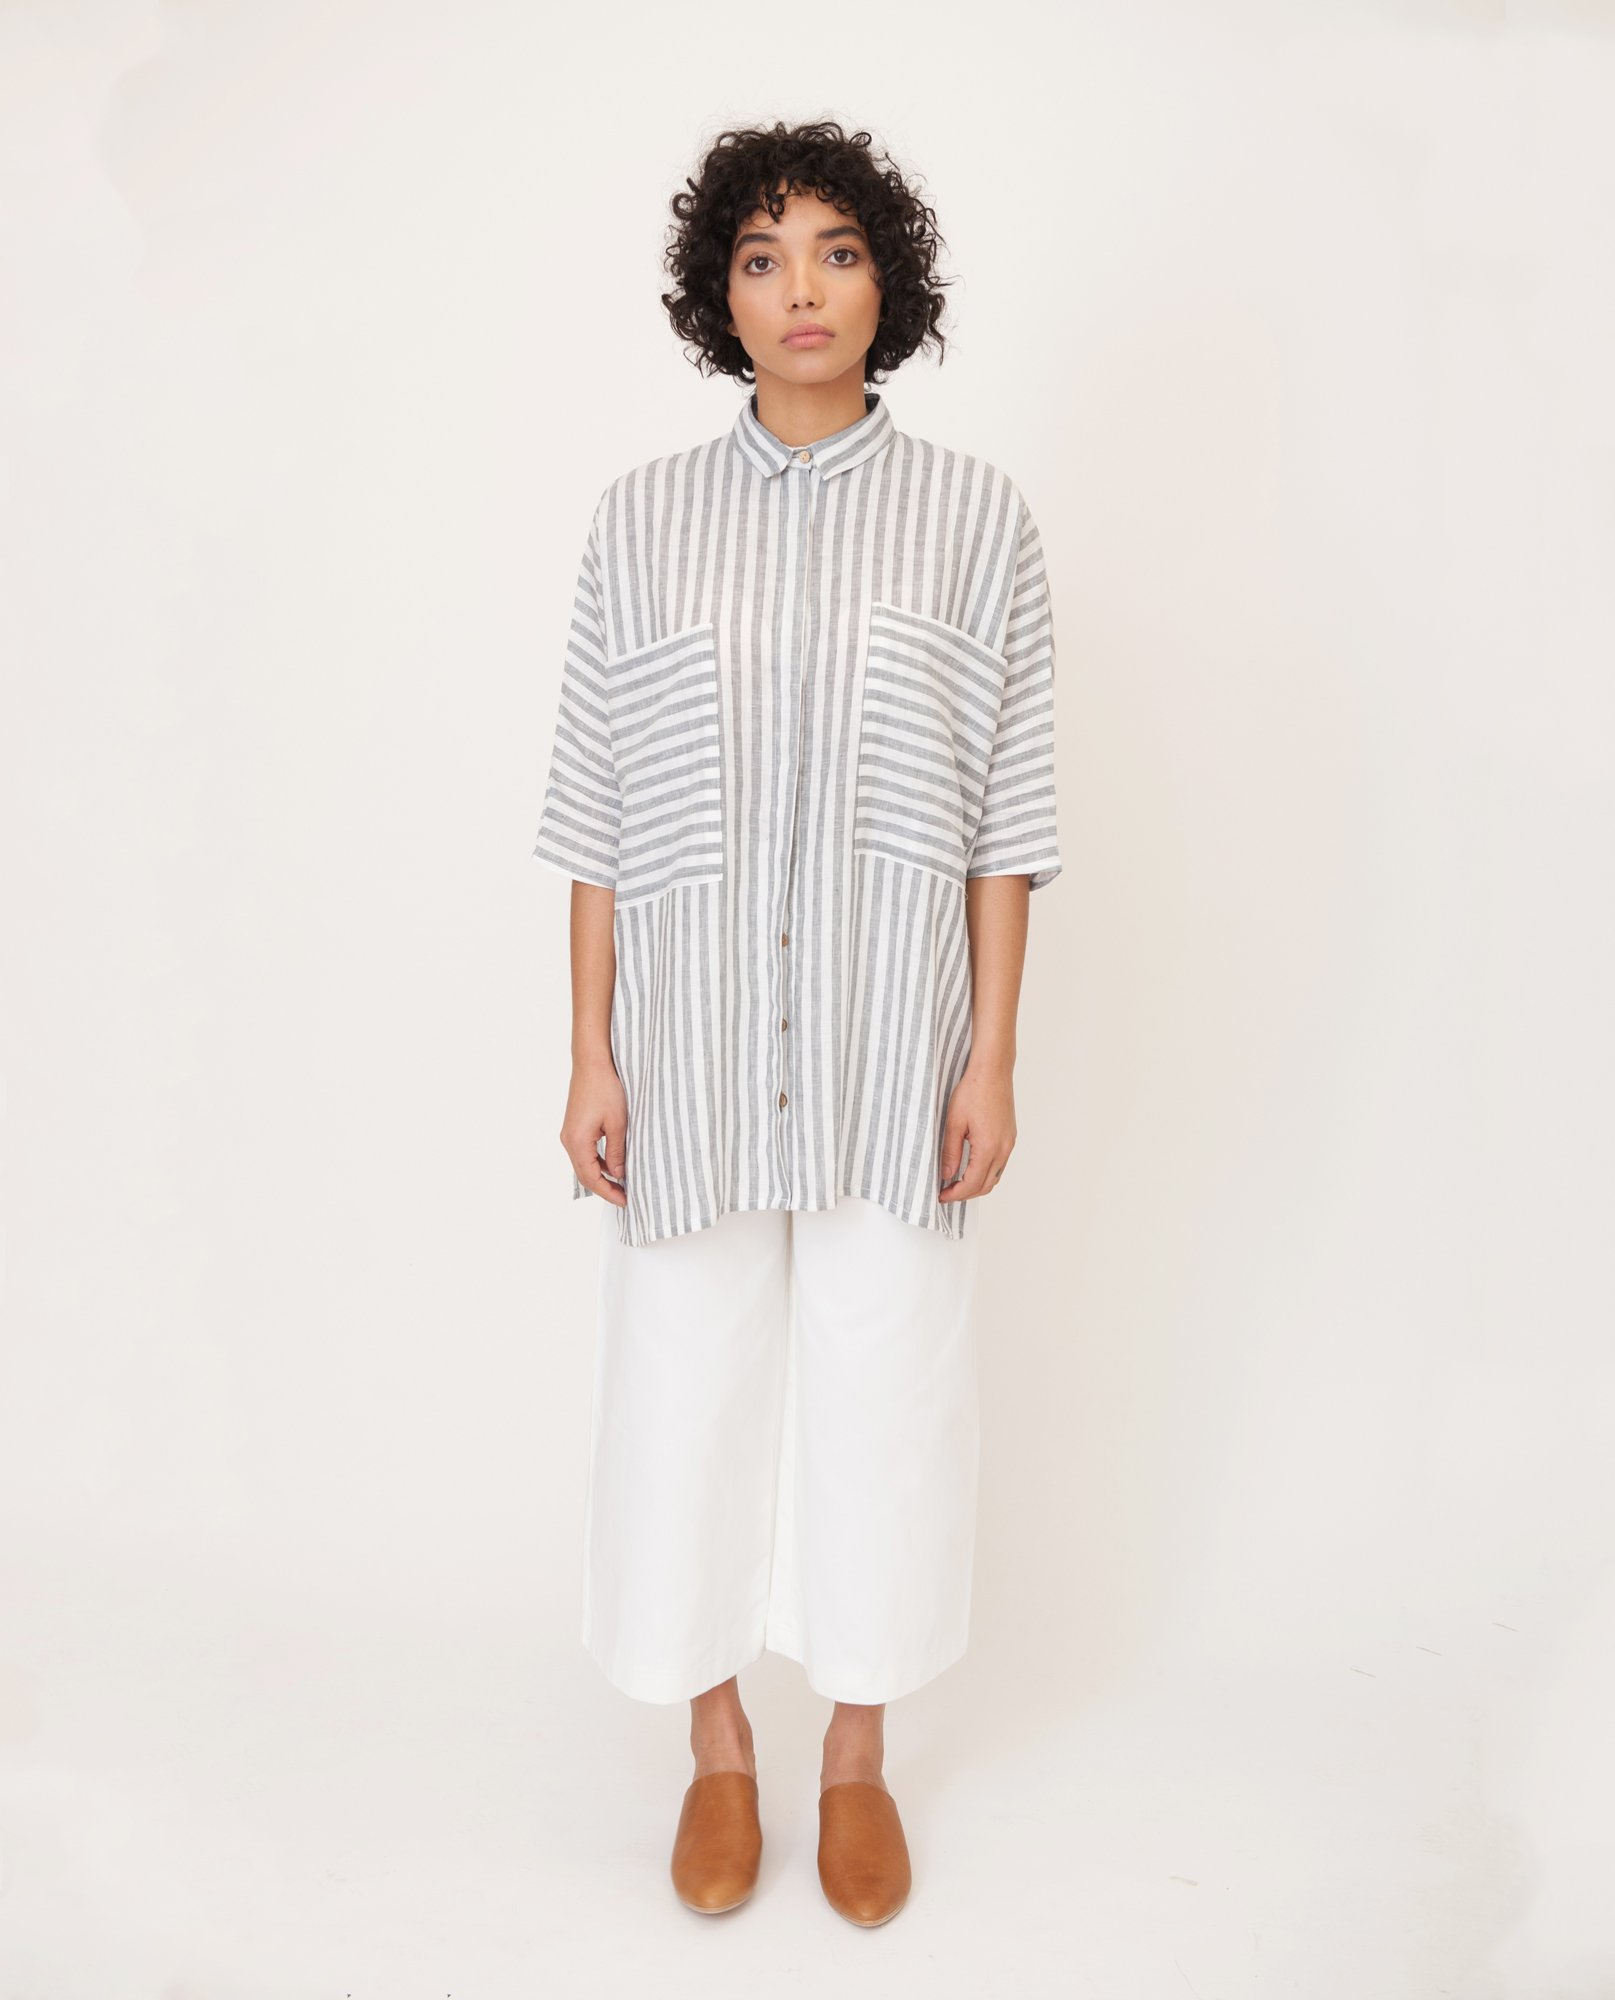 MARSHA Linen Shirt In Grey And White from Beaumont Organic